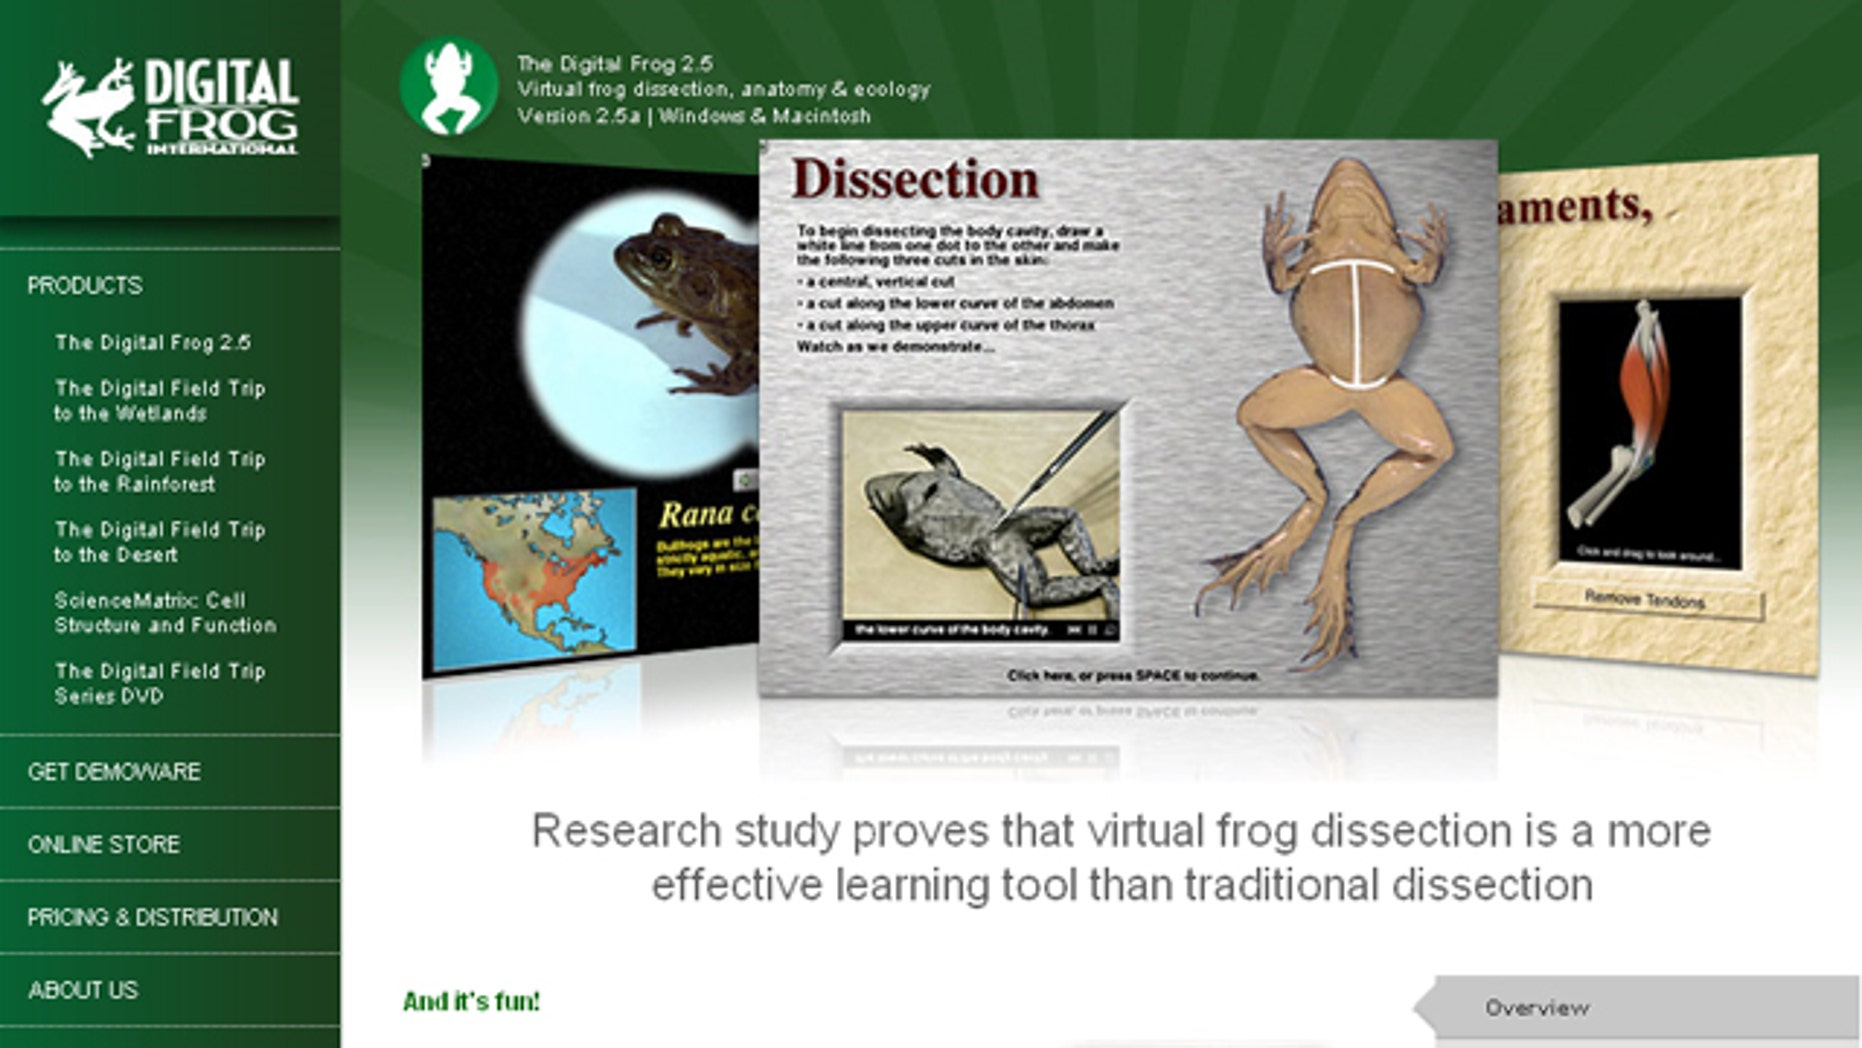 The website for The Digital Frog, software that lets students virtually dissect frogs.